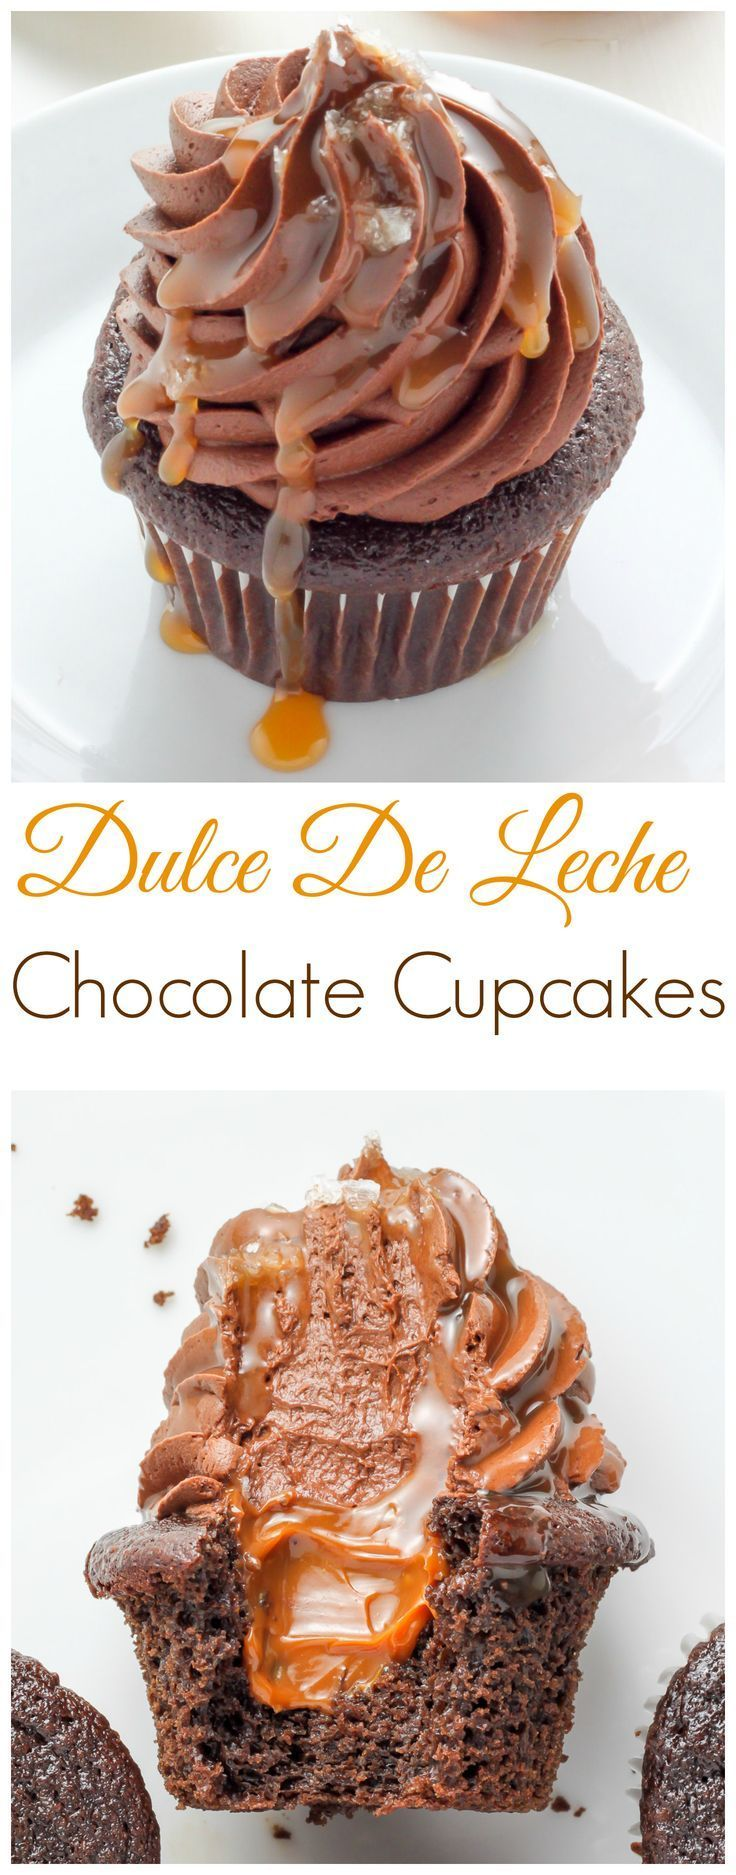 What's better than a batch of chocolate cupcakes...?! A batch of Dulce De Leche Chocolate Cupcakes! This SUPER decadent recipe is sure to become a new favorite.  Lauren B Montana